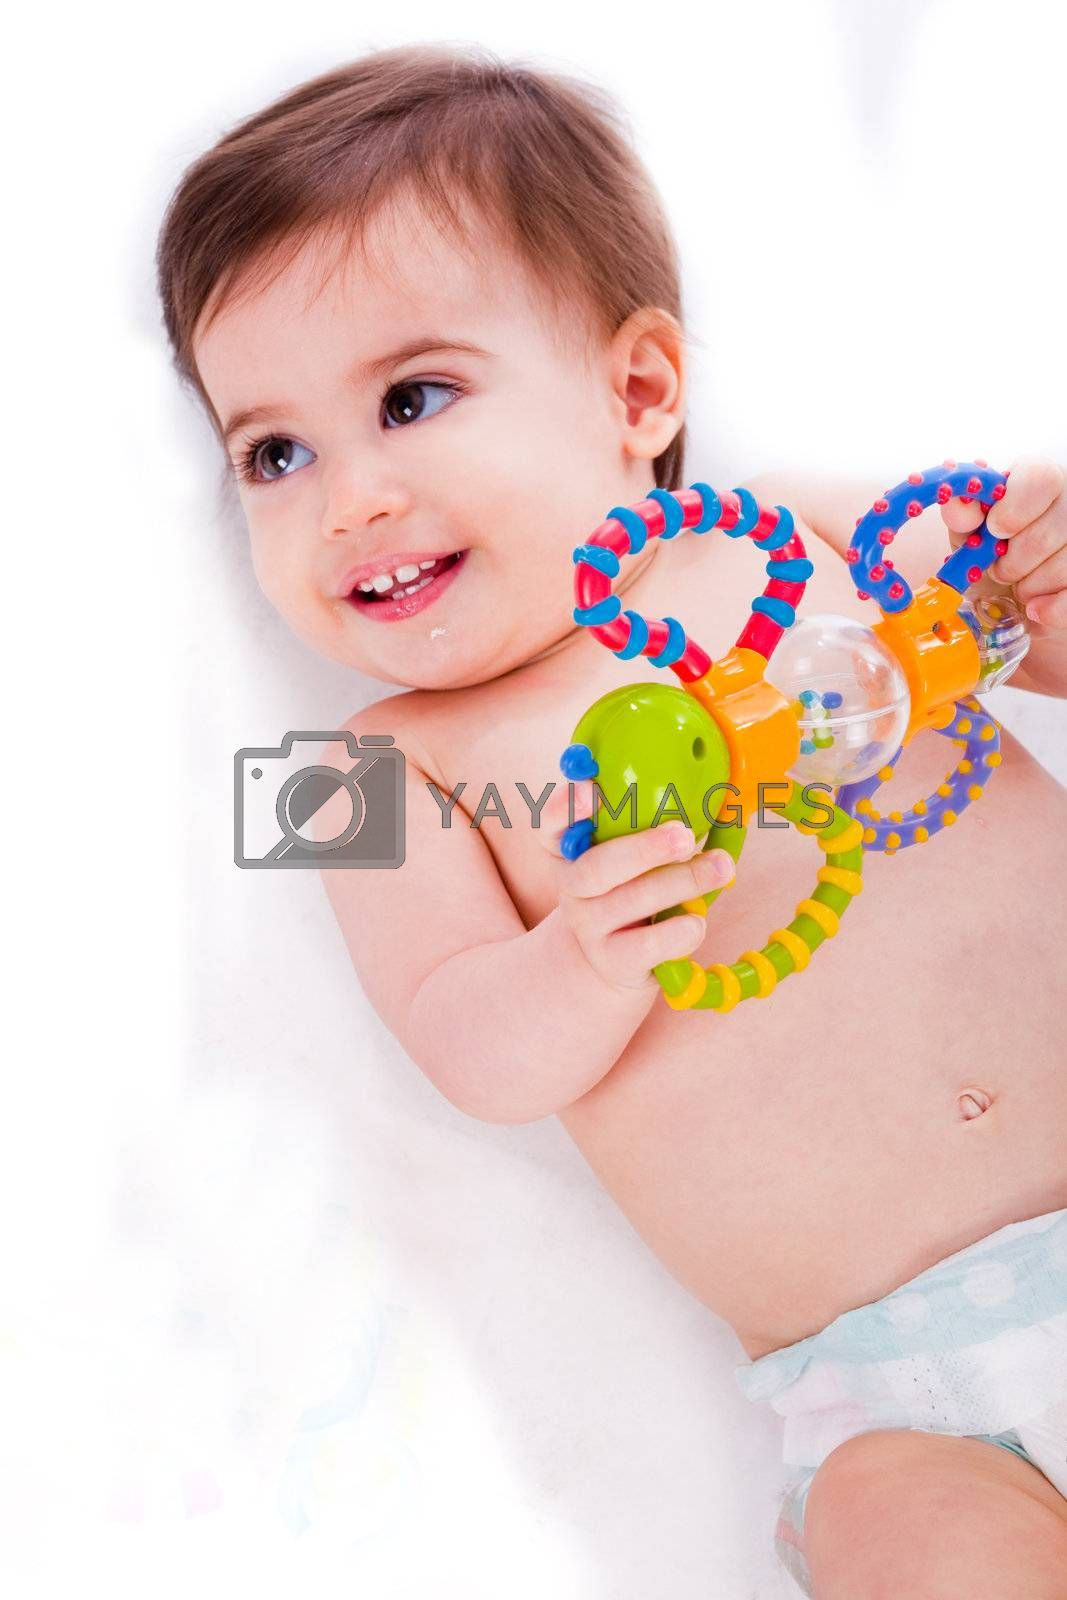 Baby playing with toys by get4net